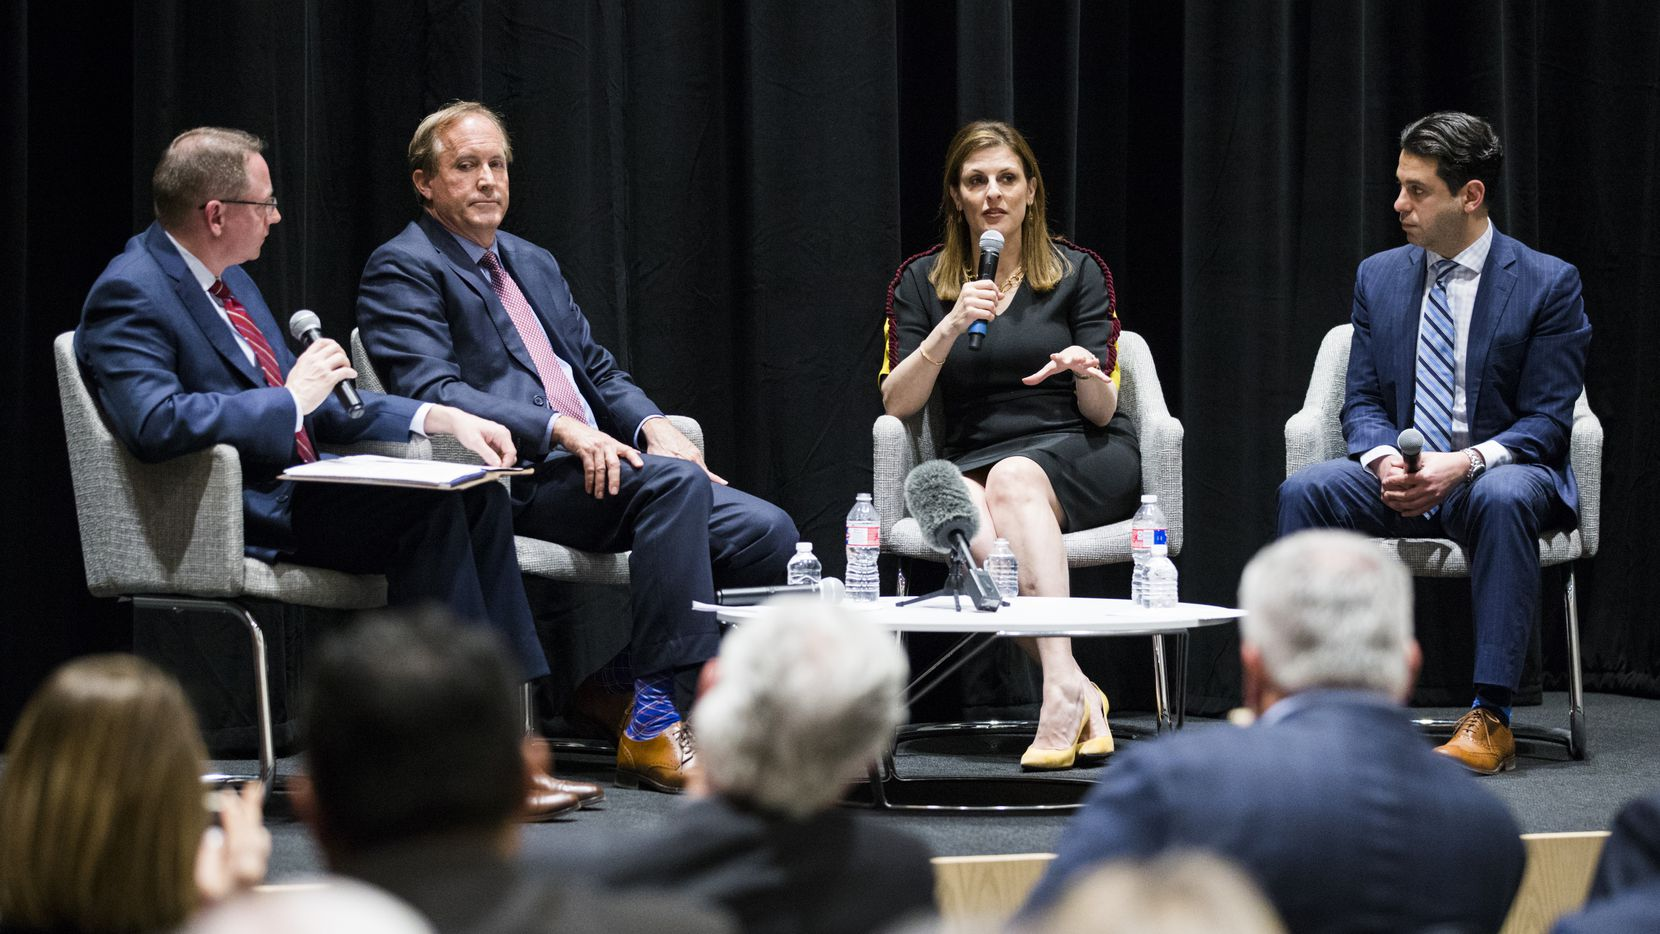 From left: The Dallas Morning News Vice President and Editor of Editorials Brendan Miniter, Attorney General Ken Paxton, U.S. Attorney Erin Nealy Cox, and Trafficking Institute CEO Victor Boutros discuss changes in the way government is addressing sex trafficking on Feb. 26, 2020, at The Dallas Morning News Auditorium in Dallas.